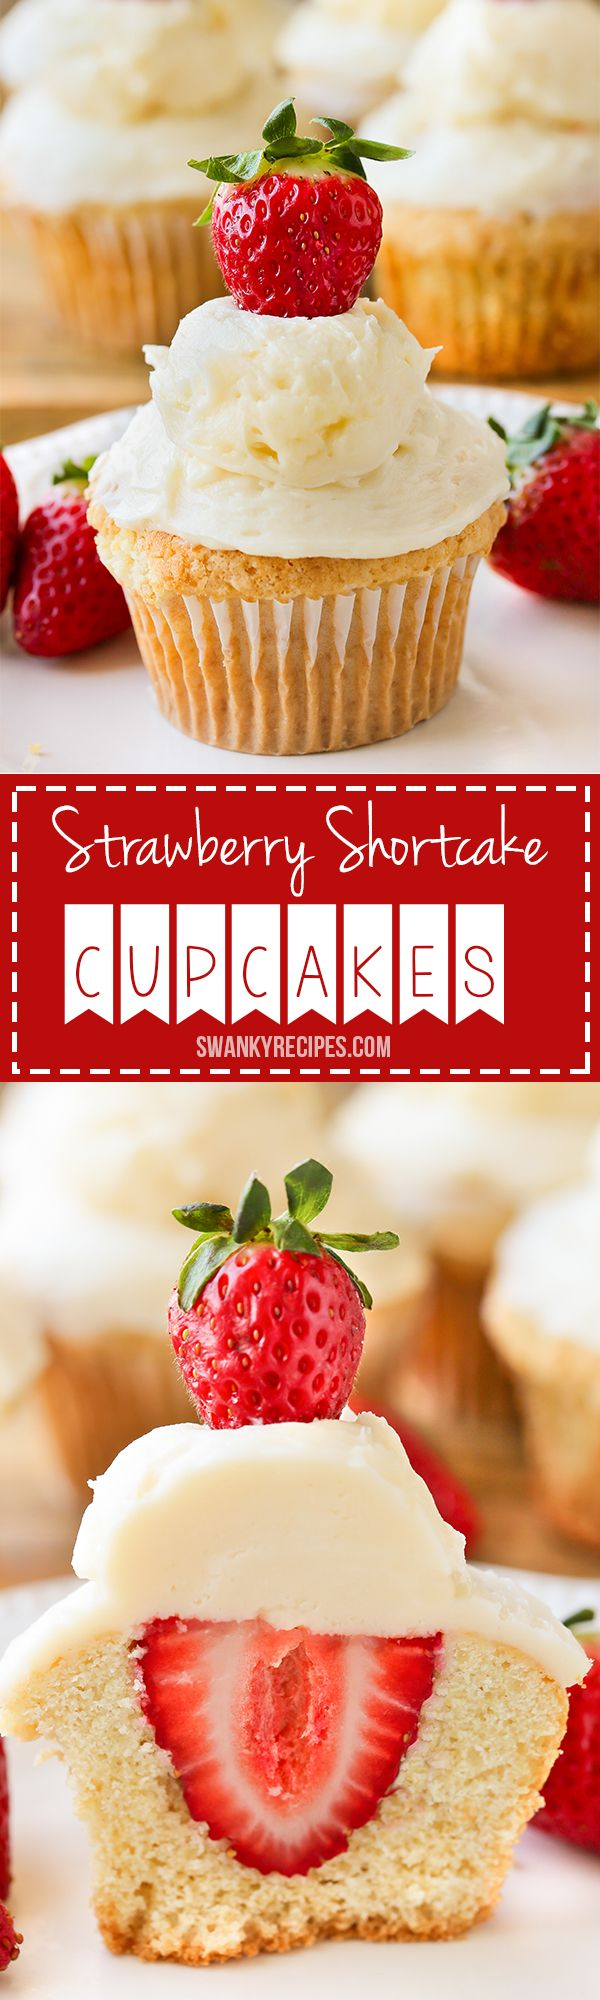 Strawberry Shortcake Cupcakes - Classic southern Strawberry Shortcake Cupcakes with a surprise strawberry stuffed inside and frosting that won't melt.